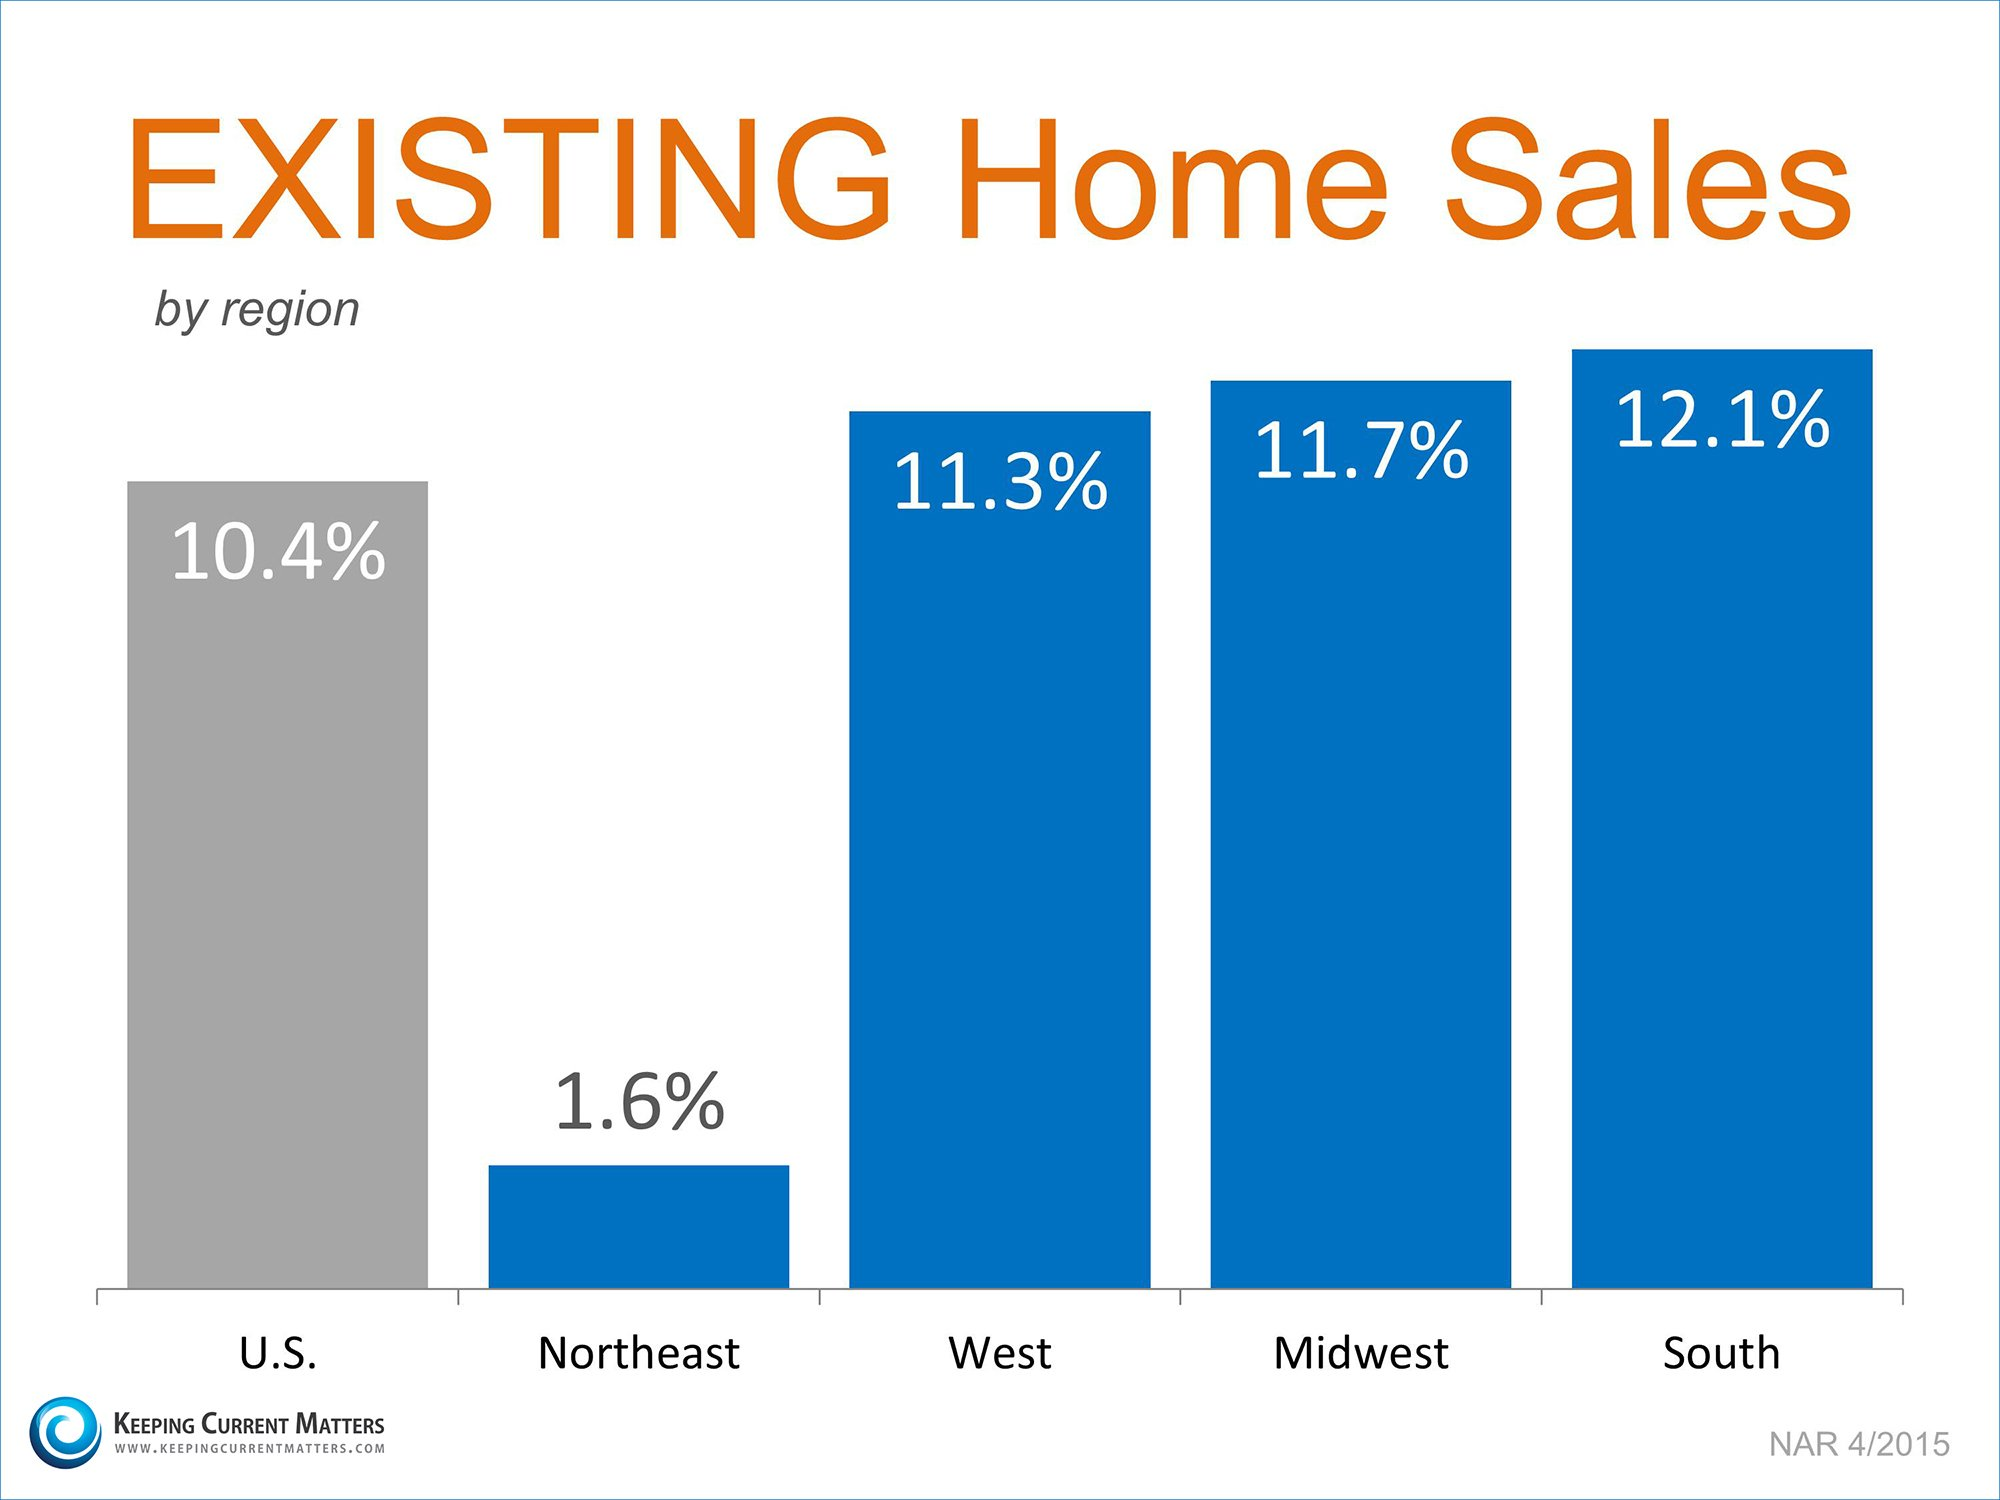 Existing Home Sales by Region | Keeping Current Matters